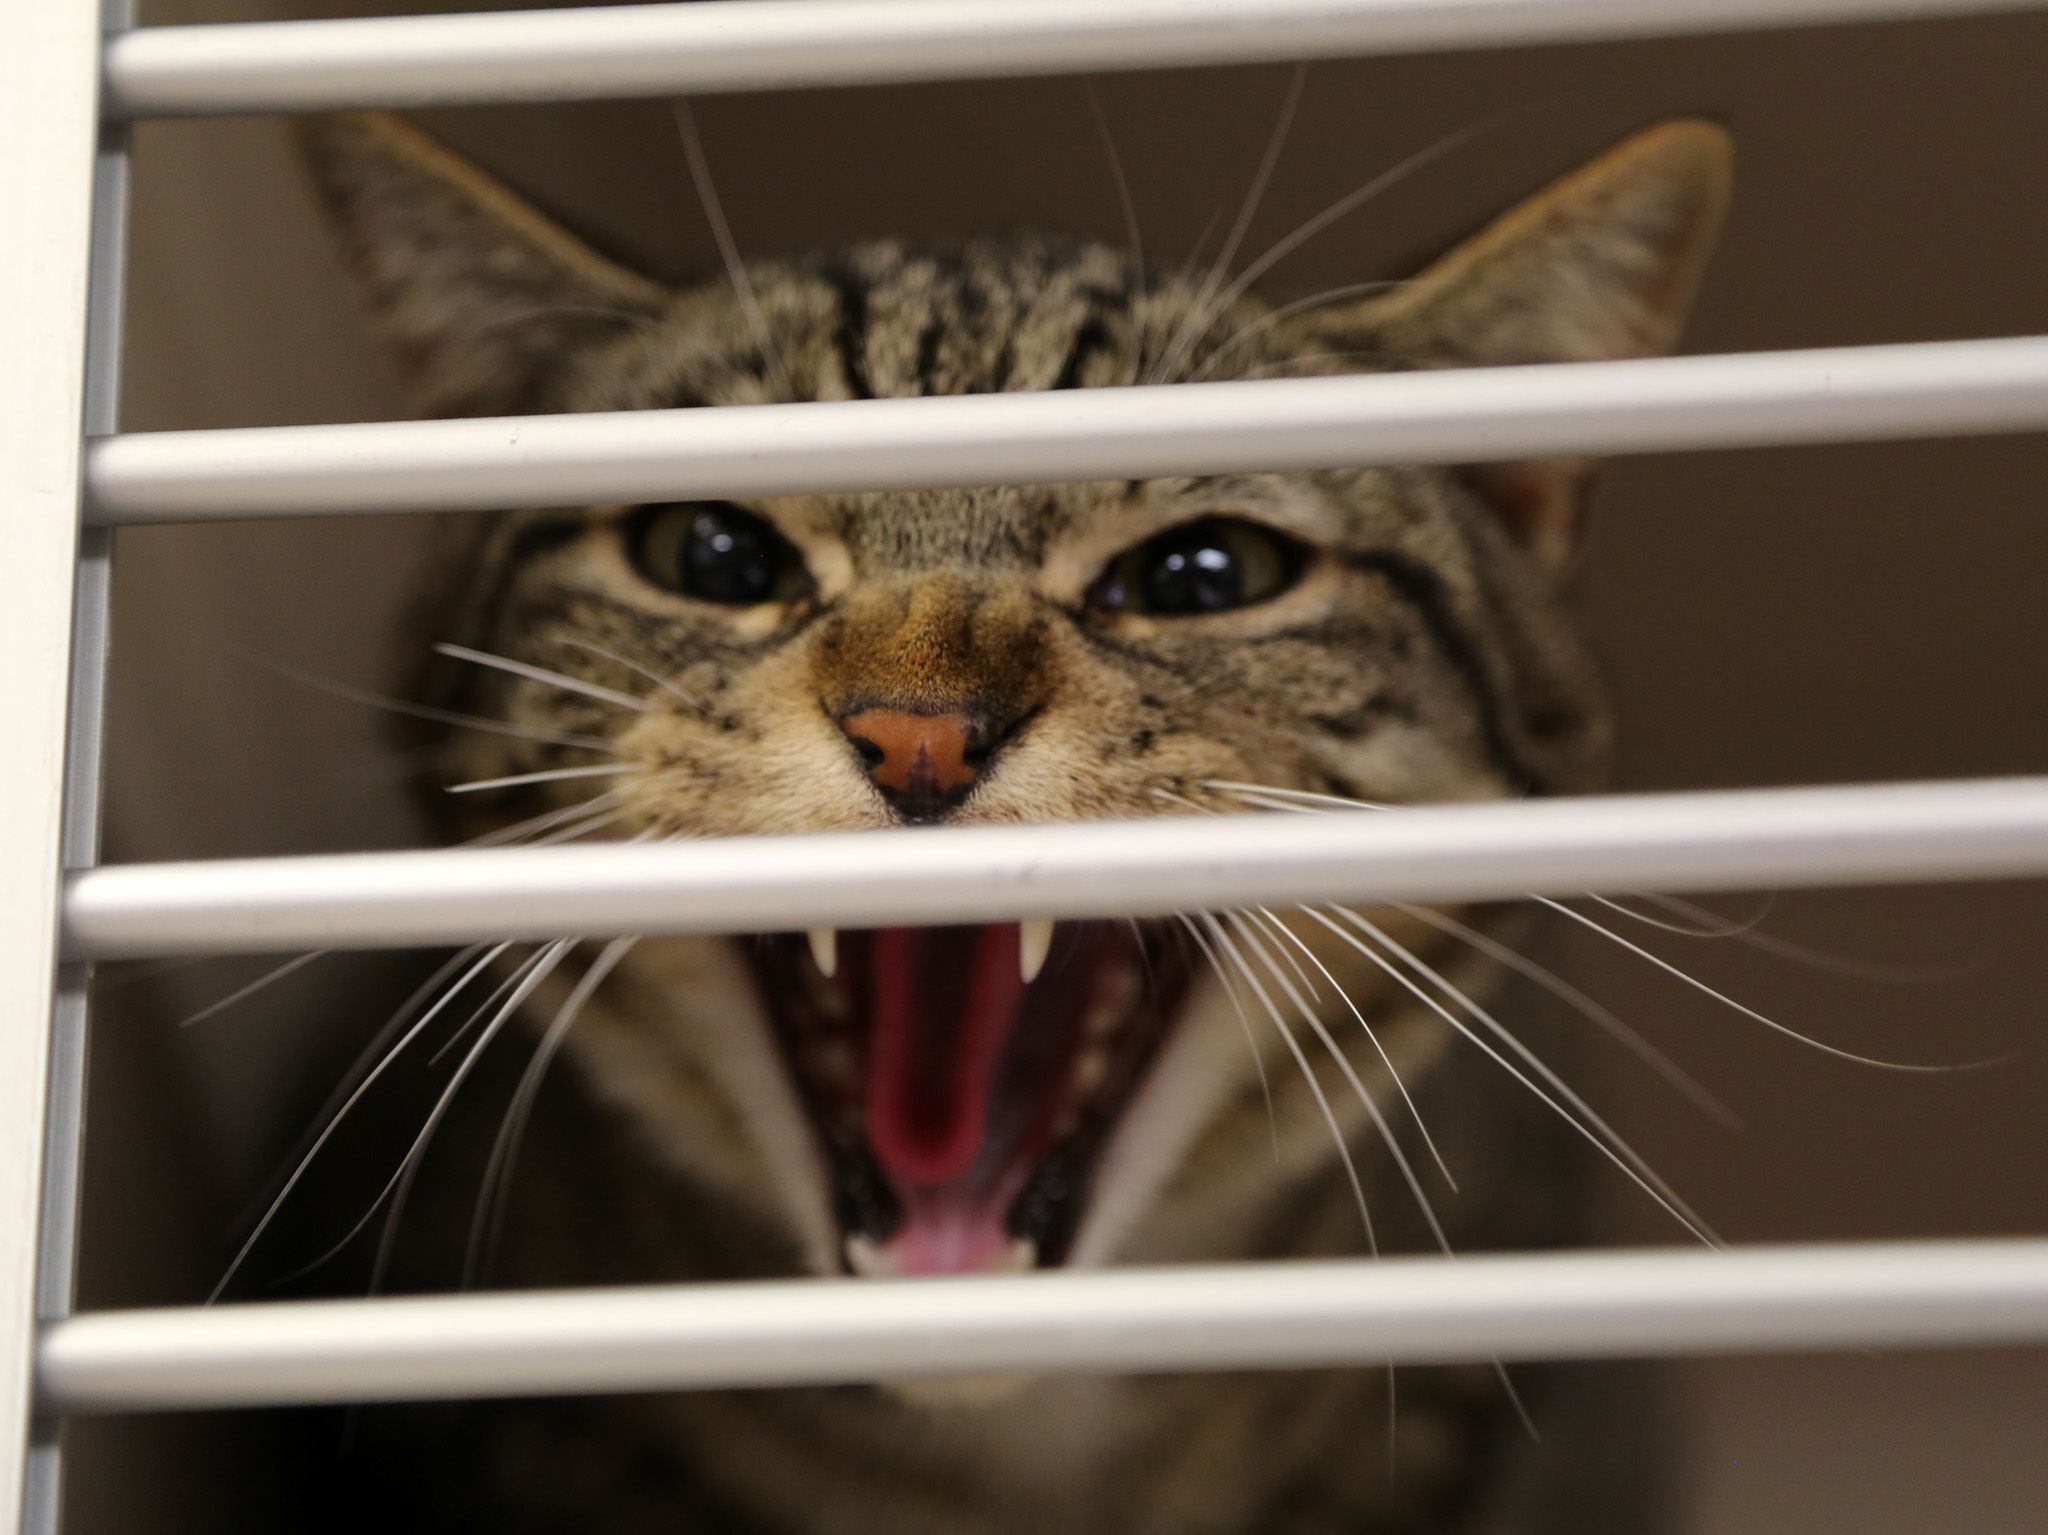 Pueblo, CO:  Fanny the cat is a little upset after being rescued from a swamp cooler. This image... [Photo of the day - نوامبر 2019]